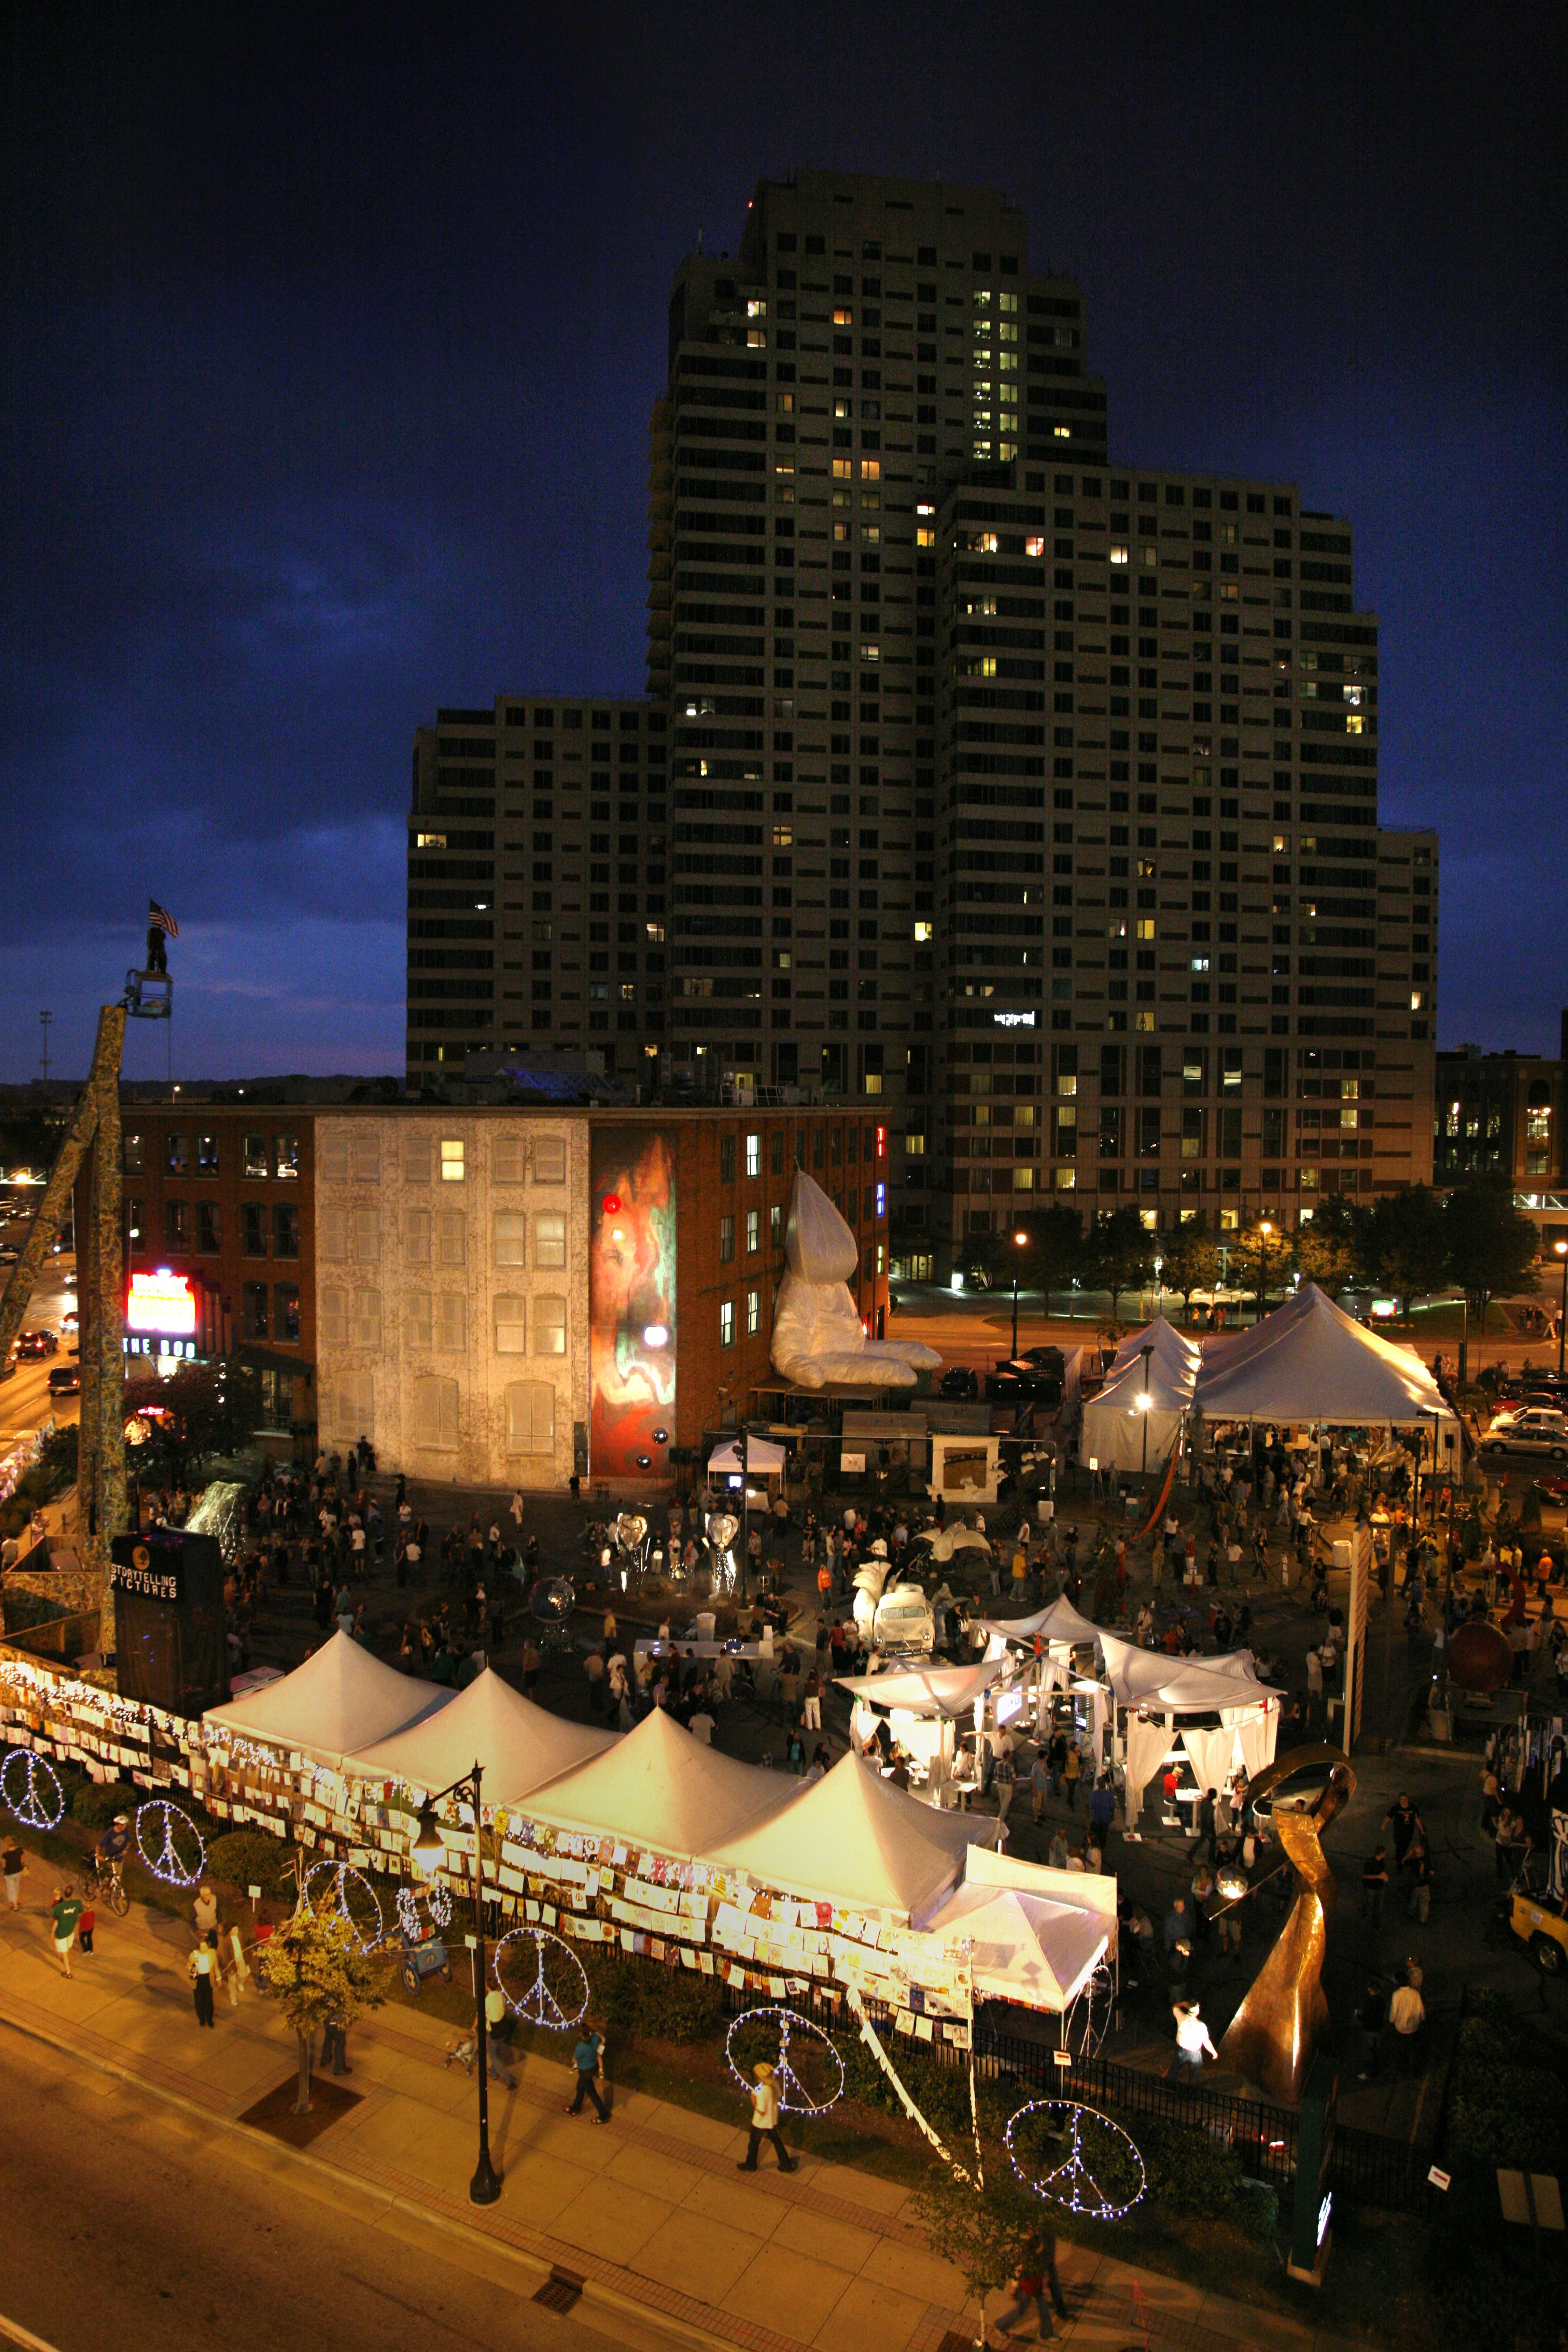 Artprize In Downtown Grand Rapids, Mi I Go Here Every